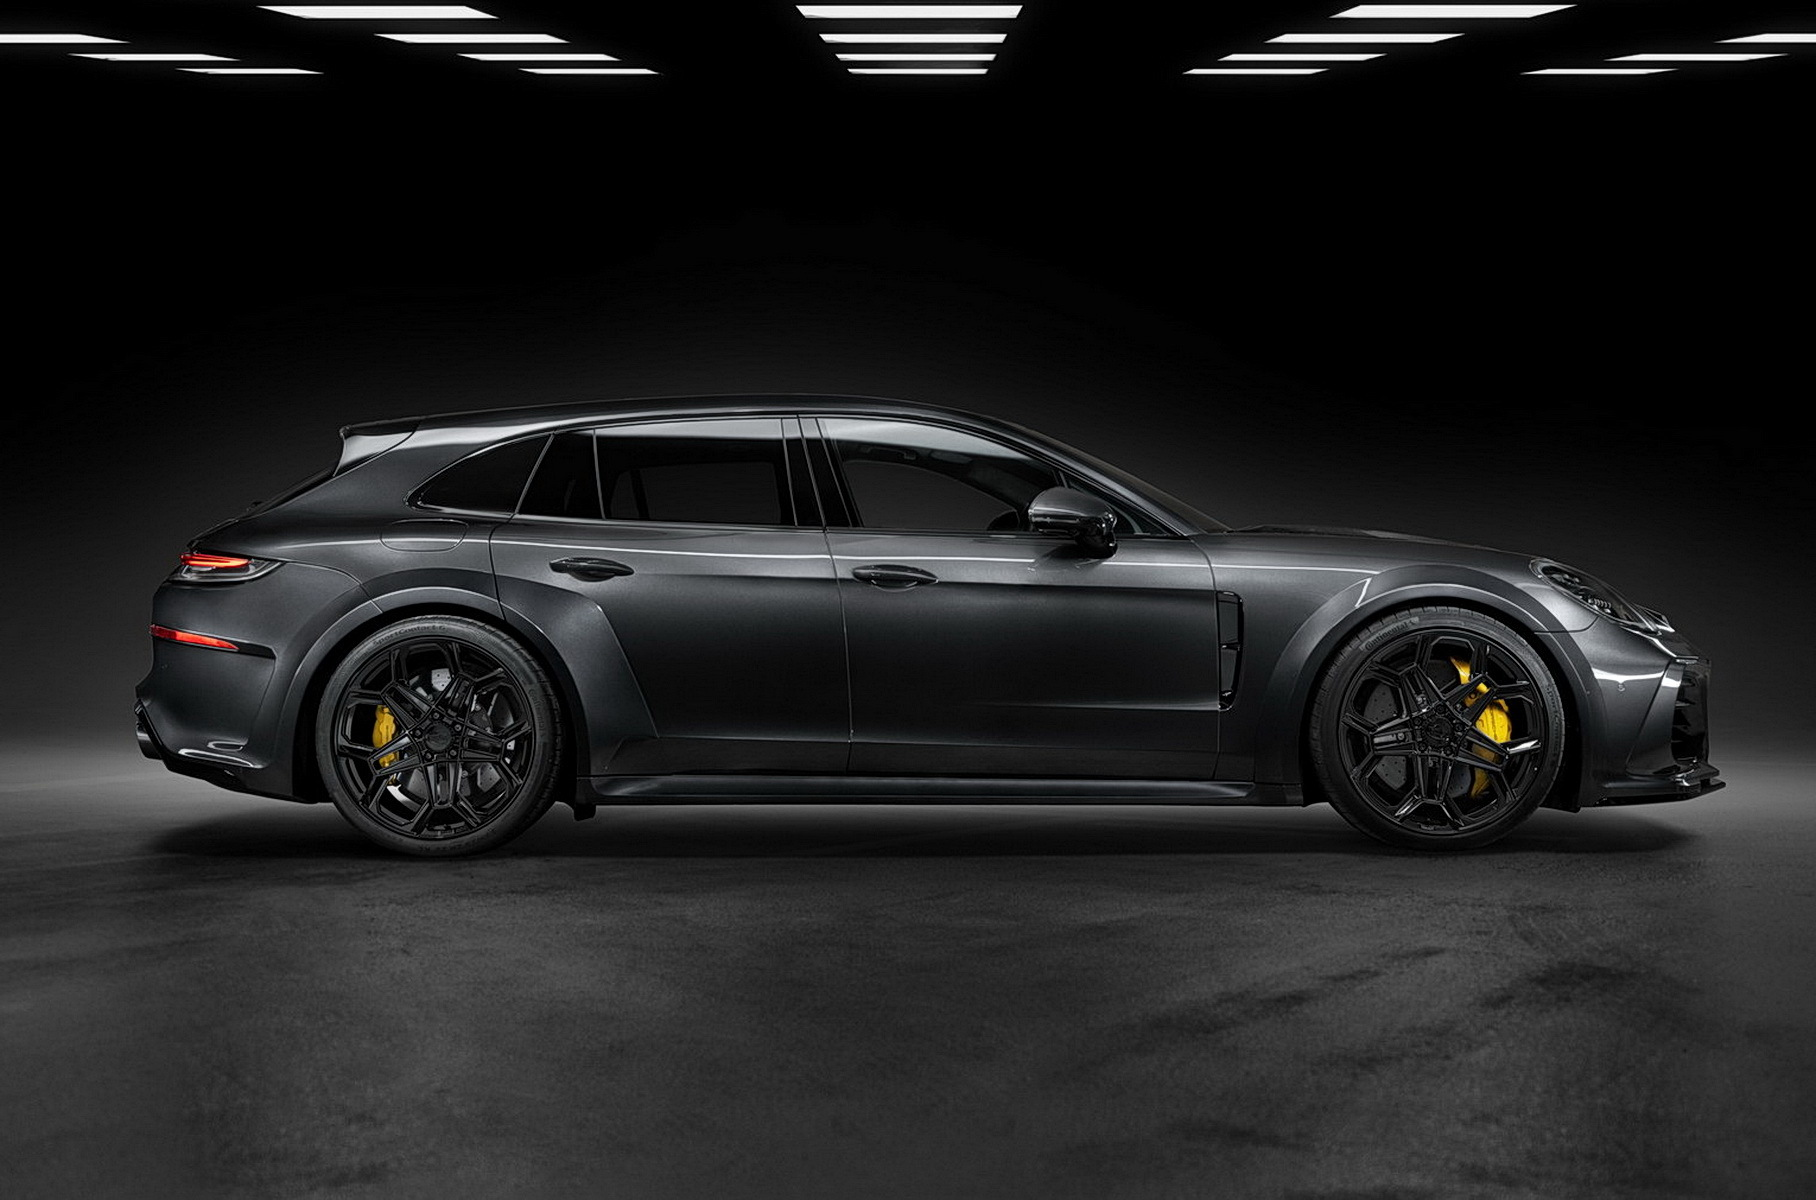 German tuner TechArt has rolled out a massive upgrade program for all latest-gen Porsche Panamera models. Let's see what's new and exciting.